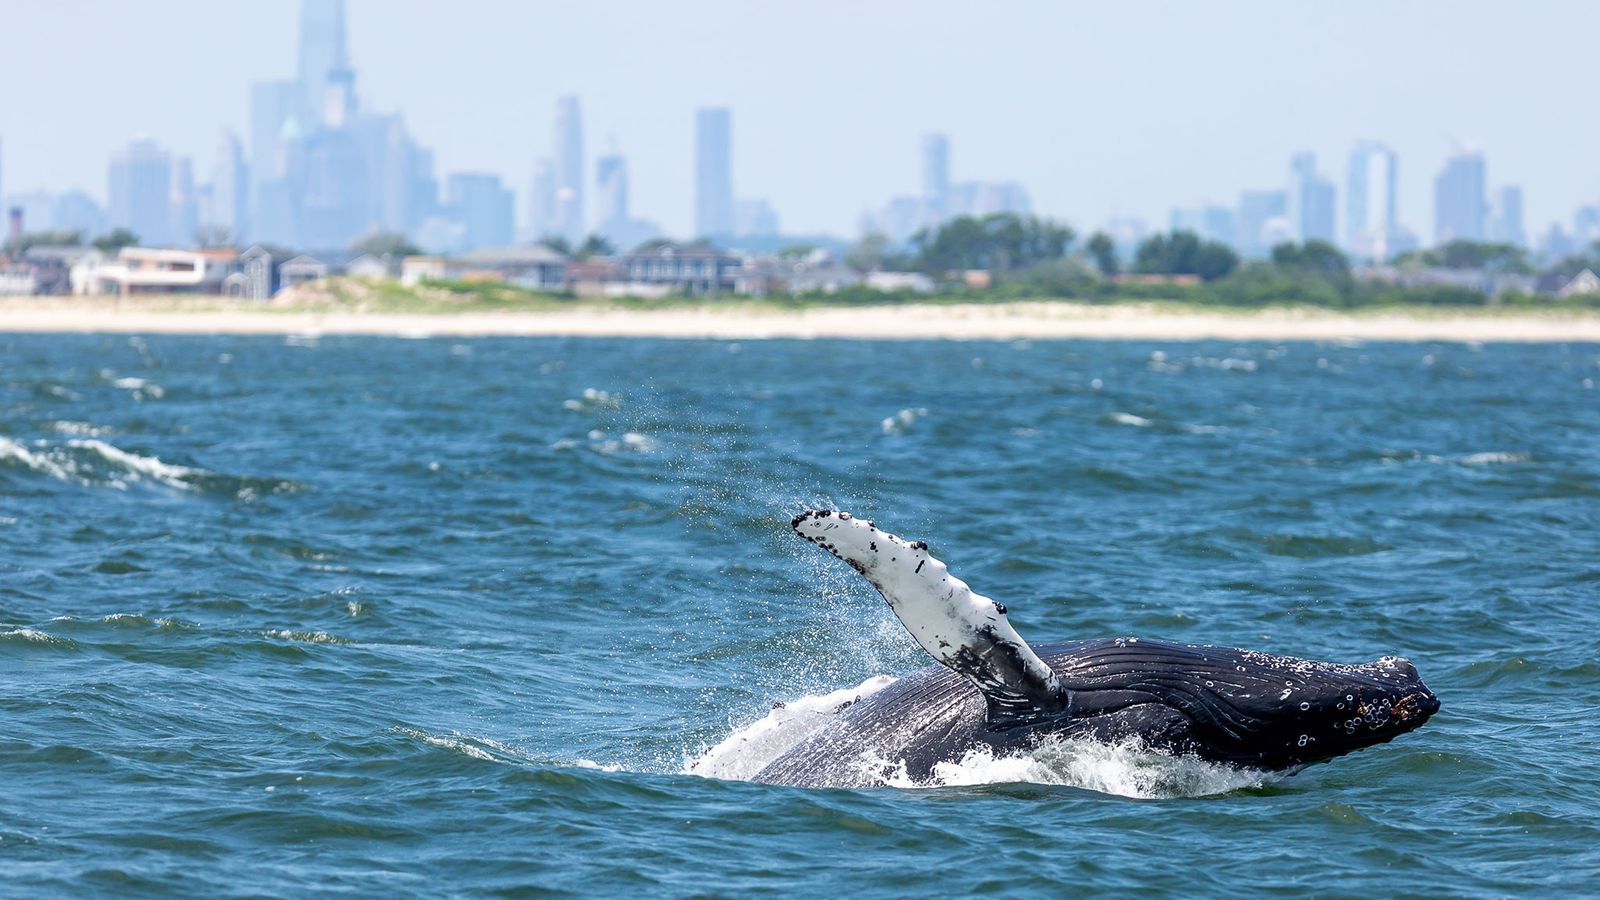 A humpback whale surfaces in New York Harbour, with the city's skyline in the background.